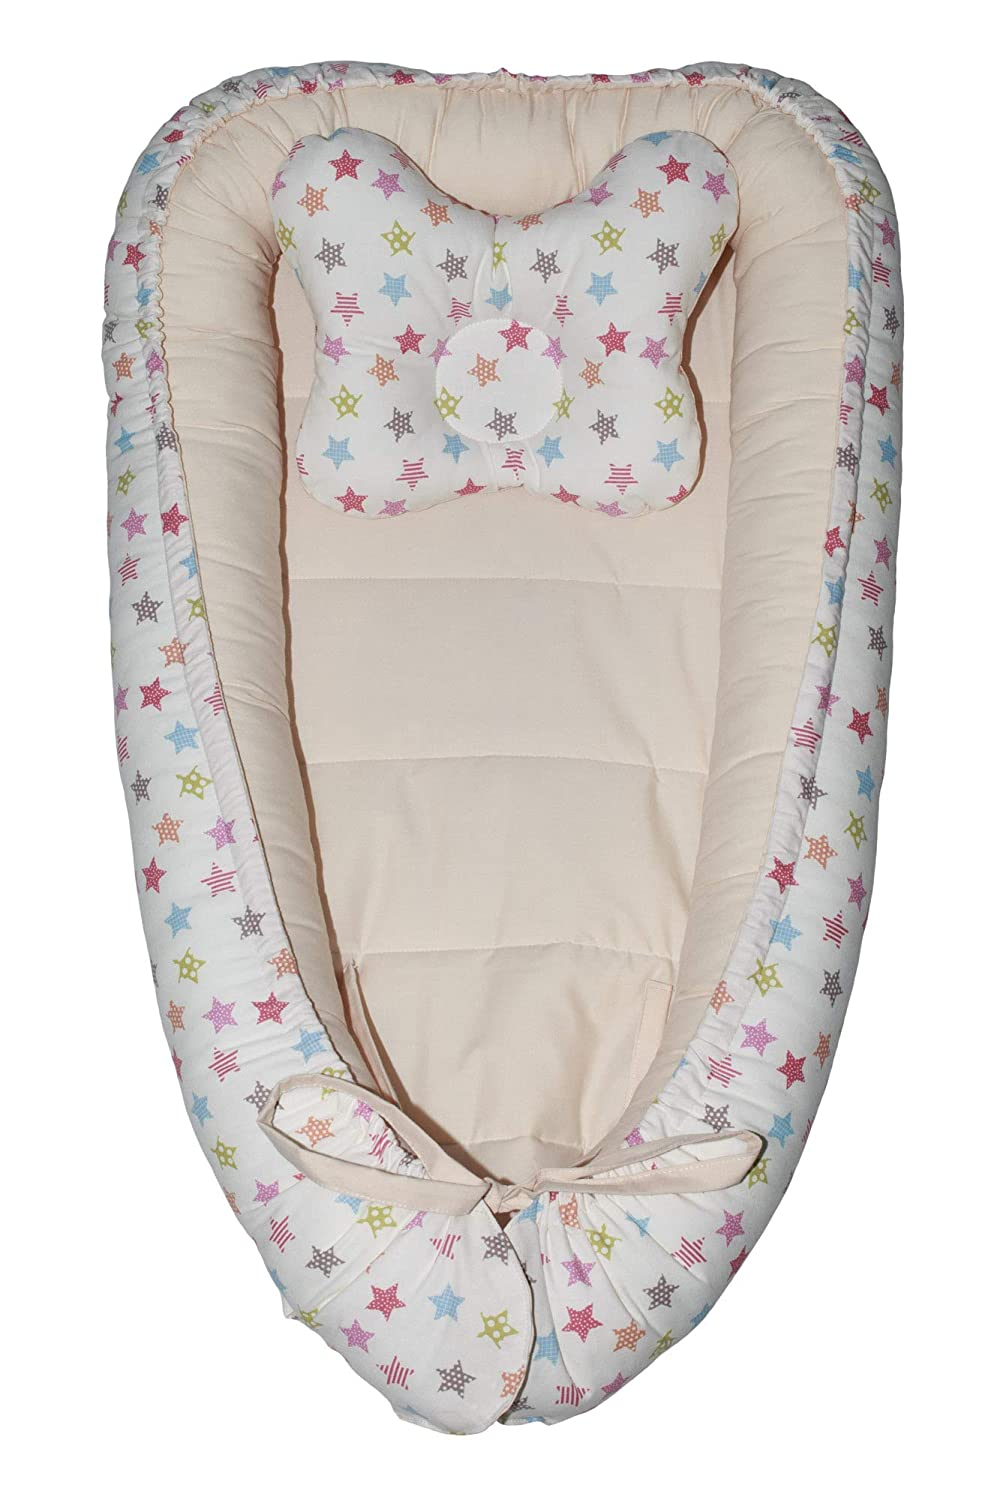 CraftSpace Deluxe Baby Set Ivory//Ivory stars Double-sides Cotton and Hypoallergenic filler 80cm x 50cm. for newborn babies Various Designs Lounger + Pillow